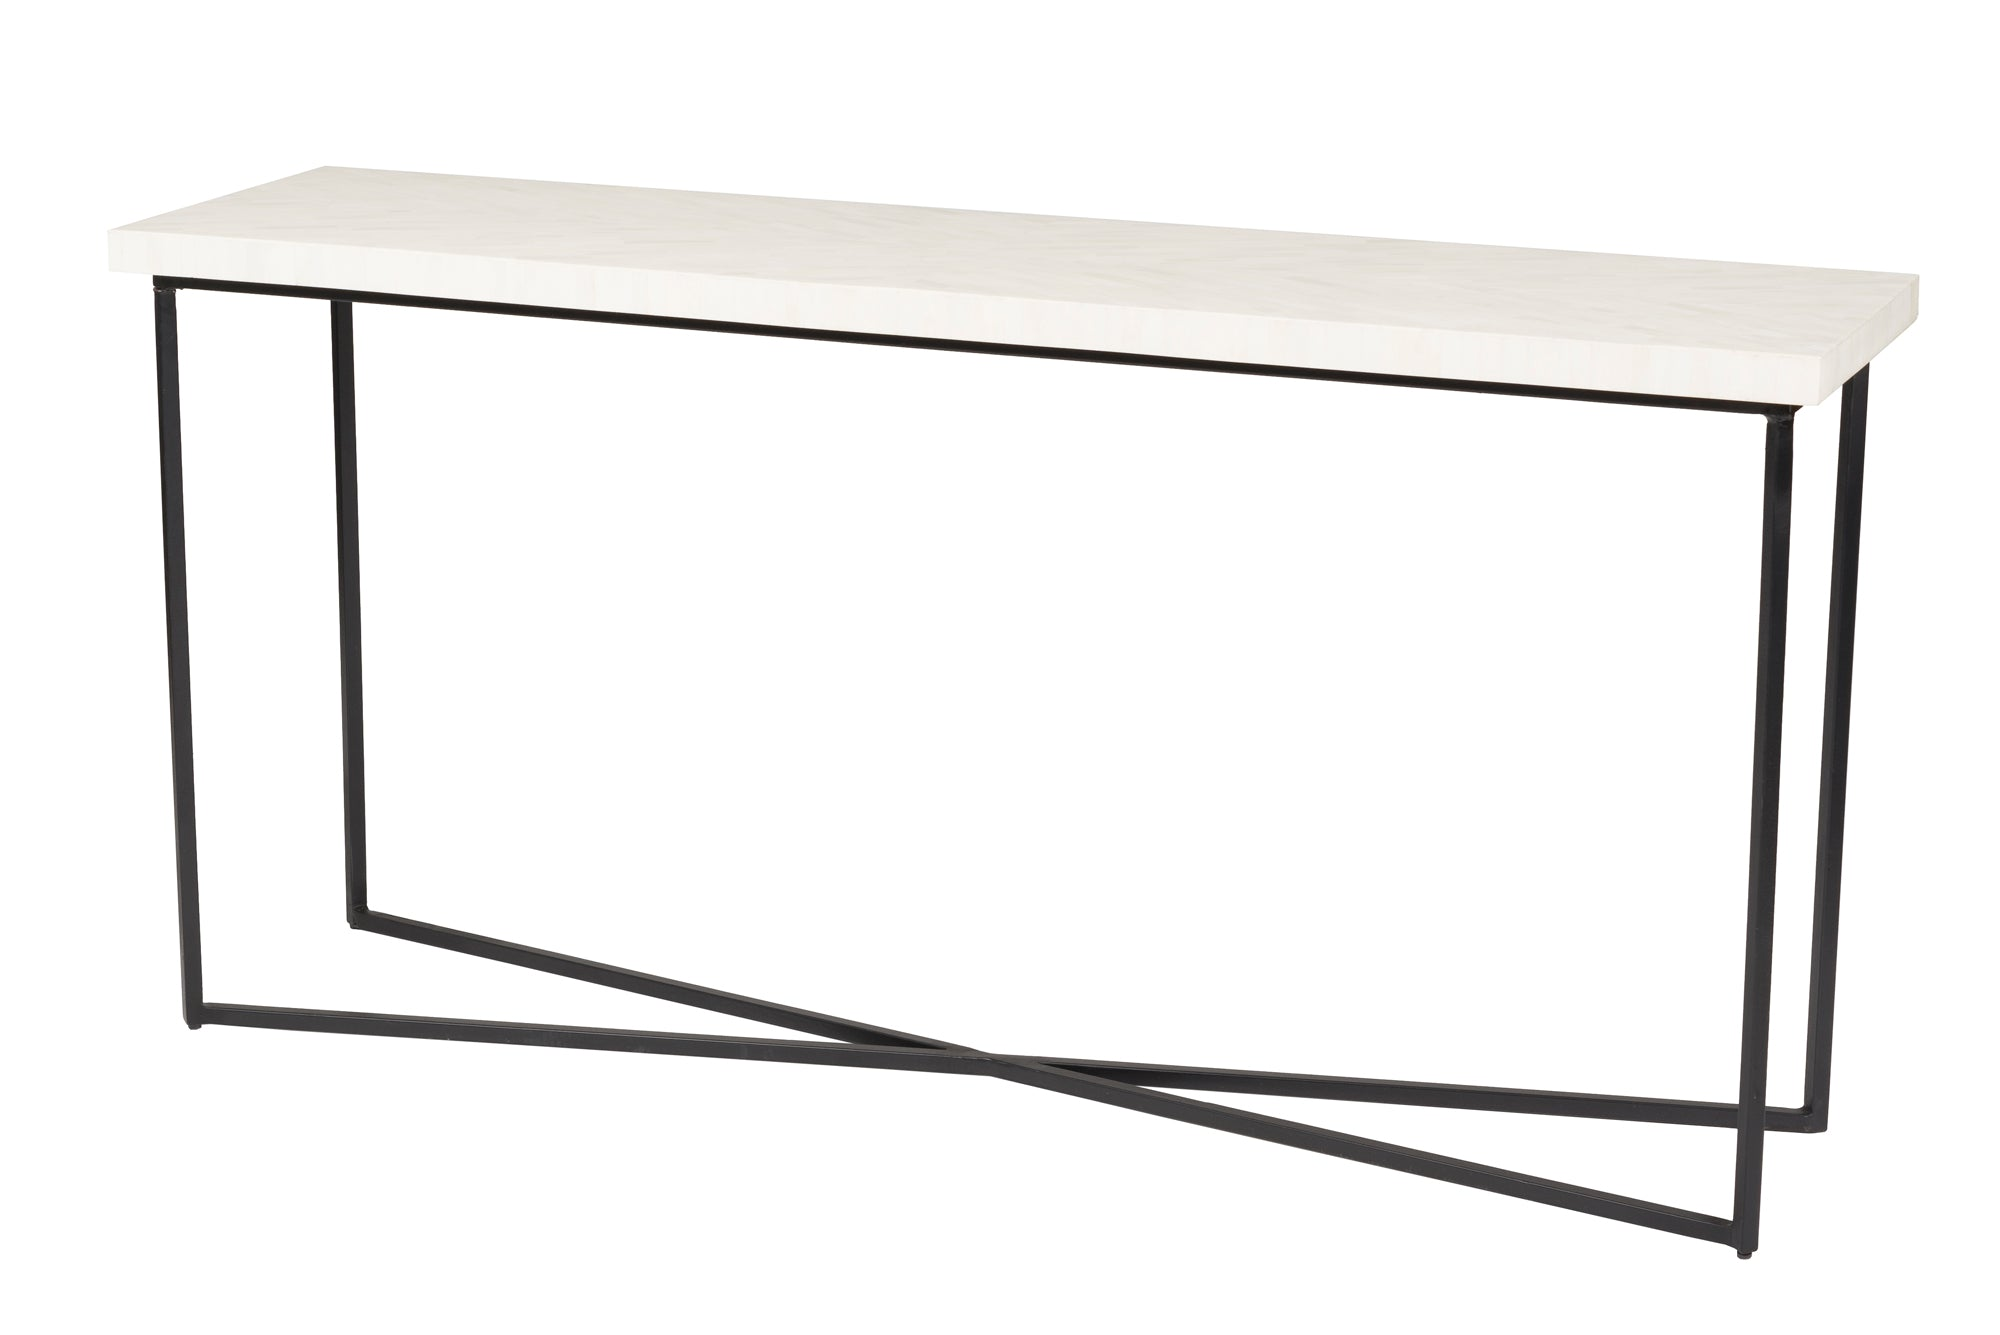 Fifth Avenue Console Table